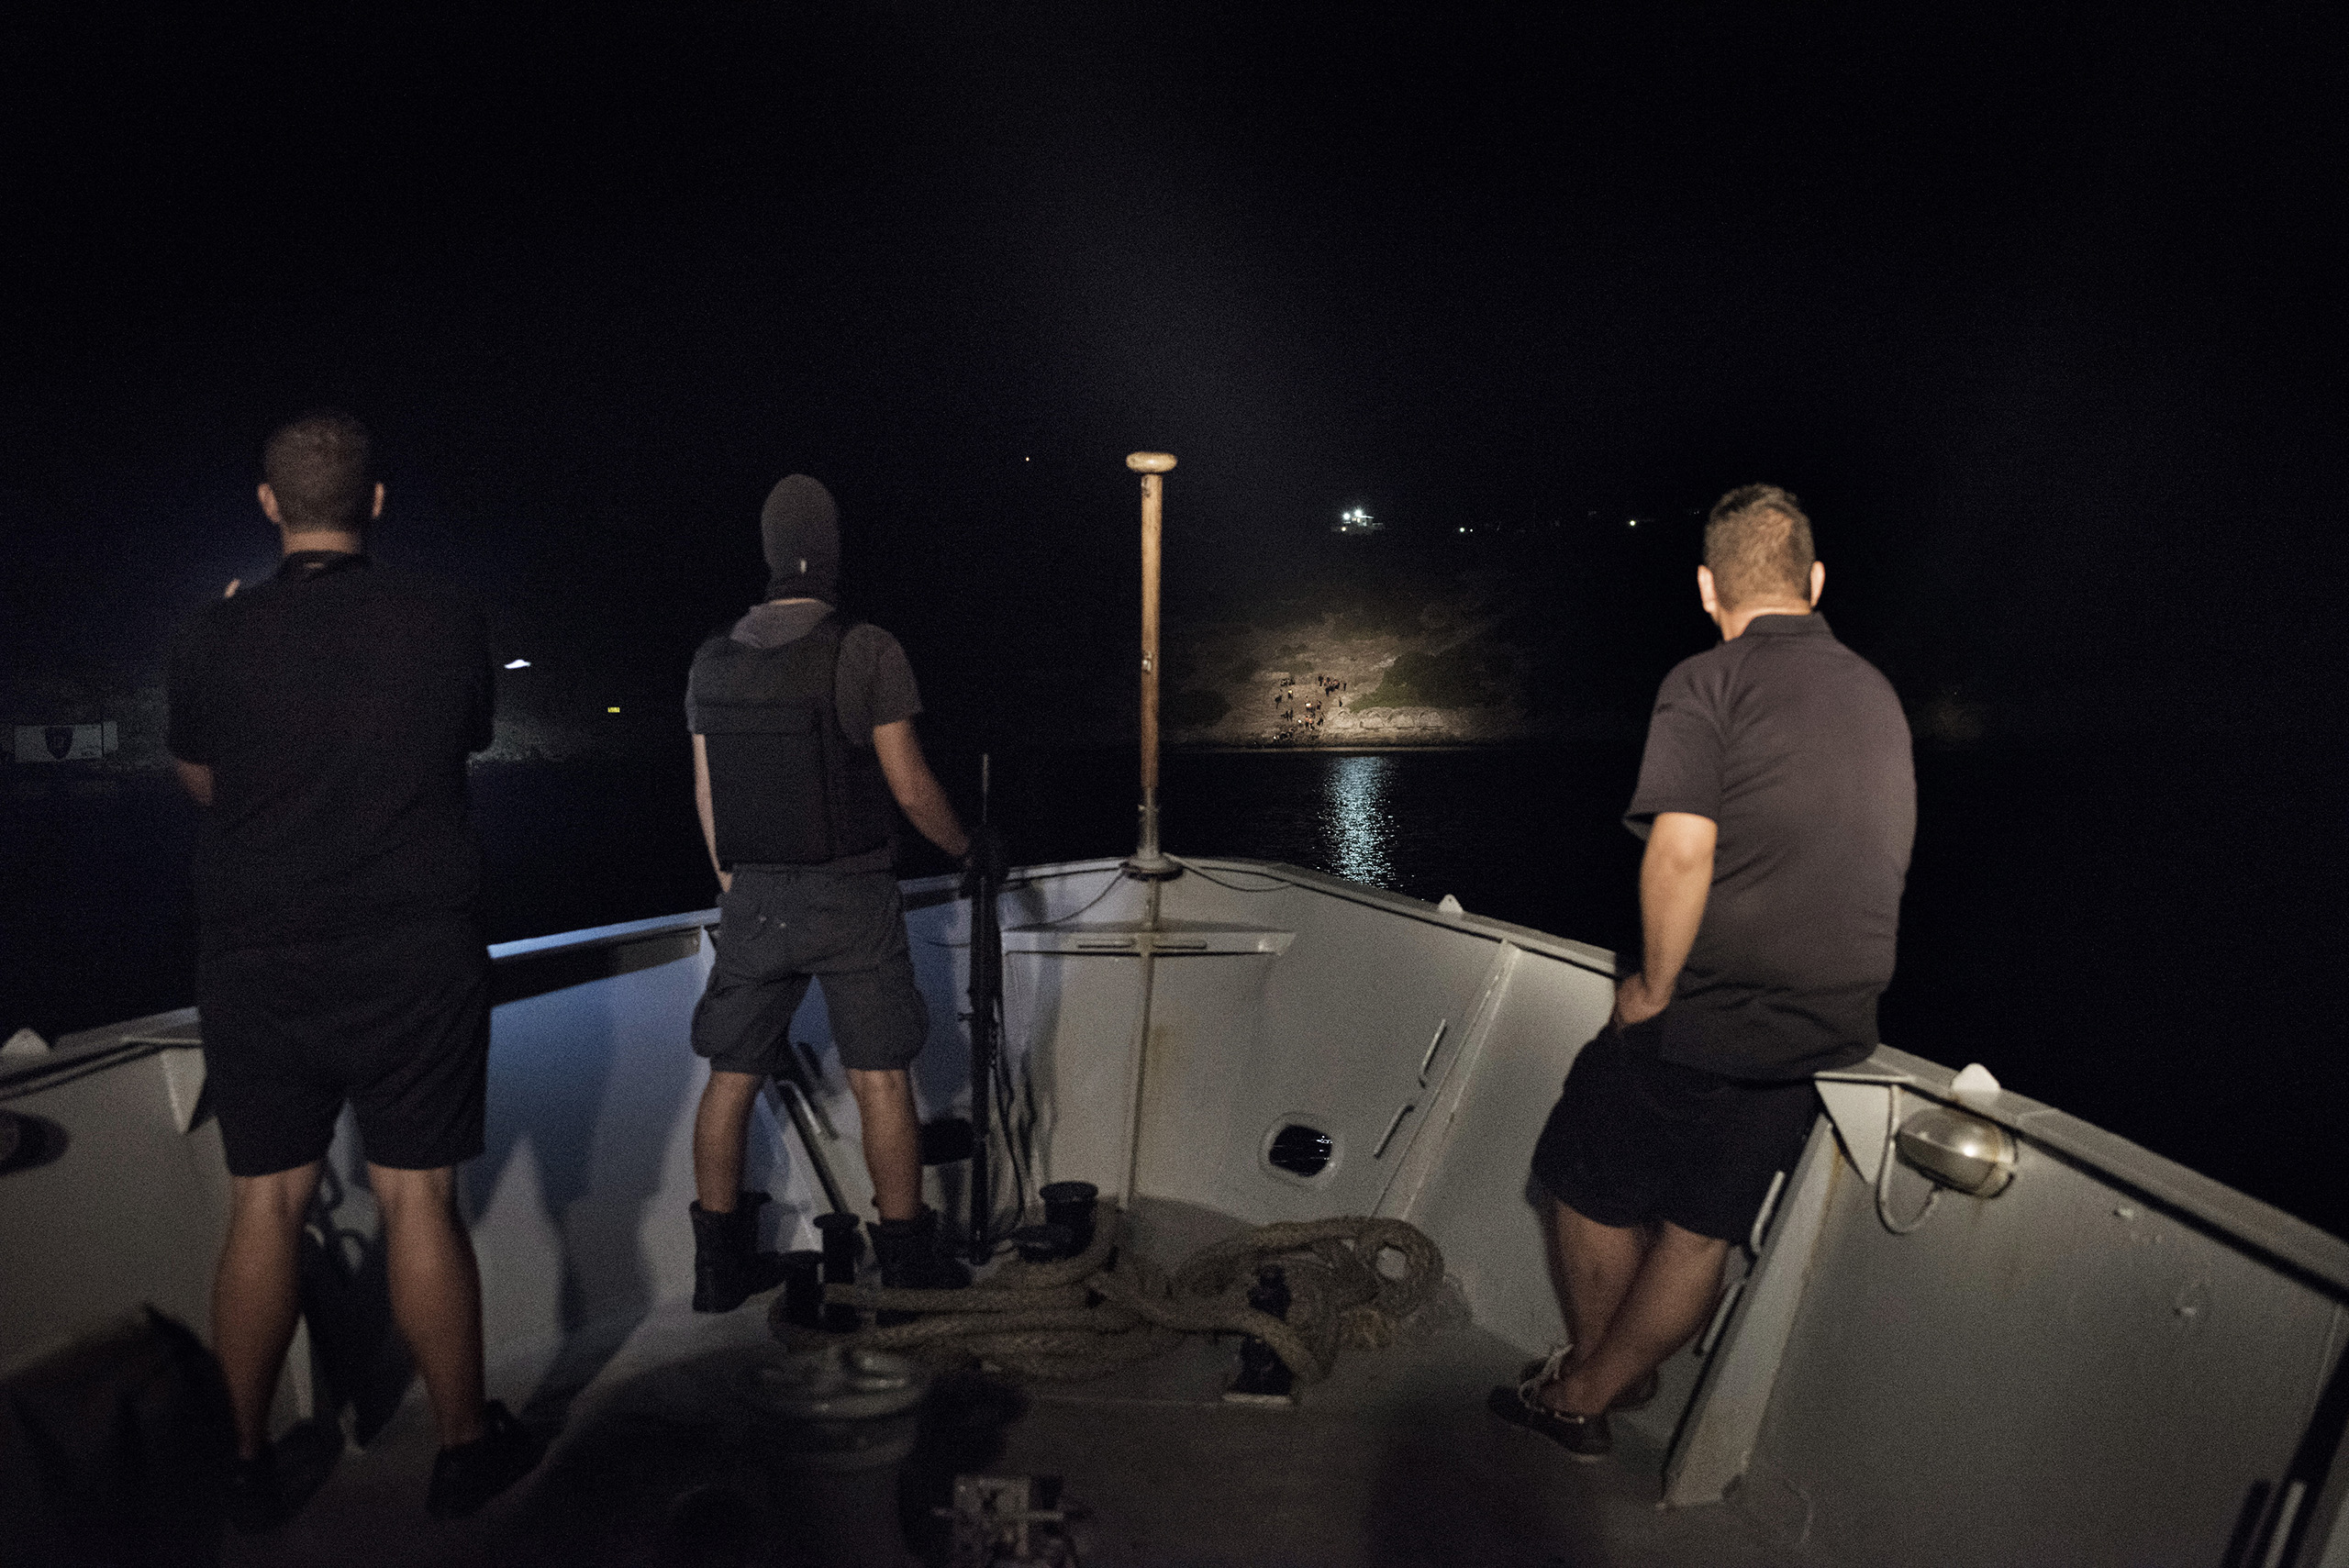 Greek coast guards spot a group of migrants who have just landed on the island of Farmakonisi, a Greek naval outpost near the border with Turkey. Sept. 7, 2015.